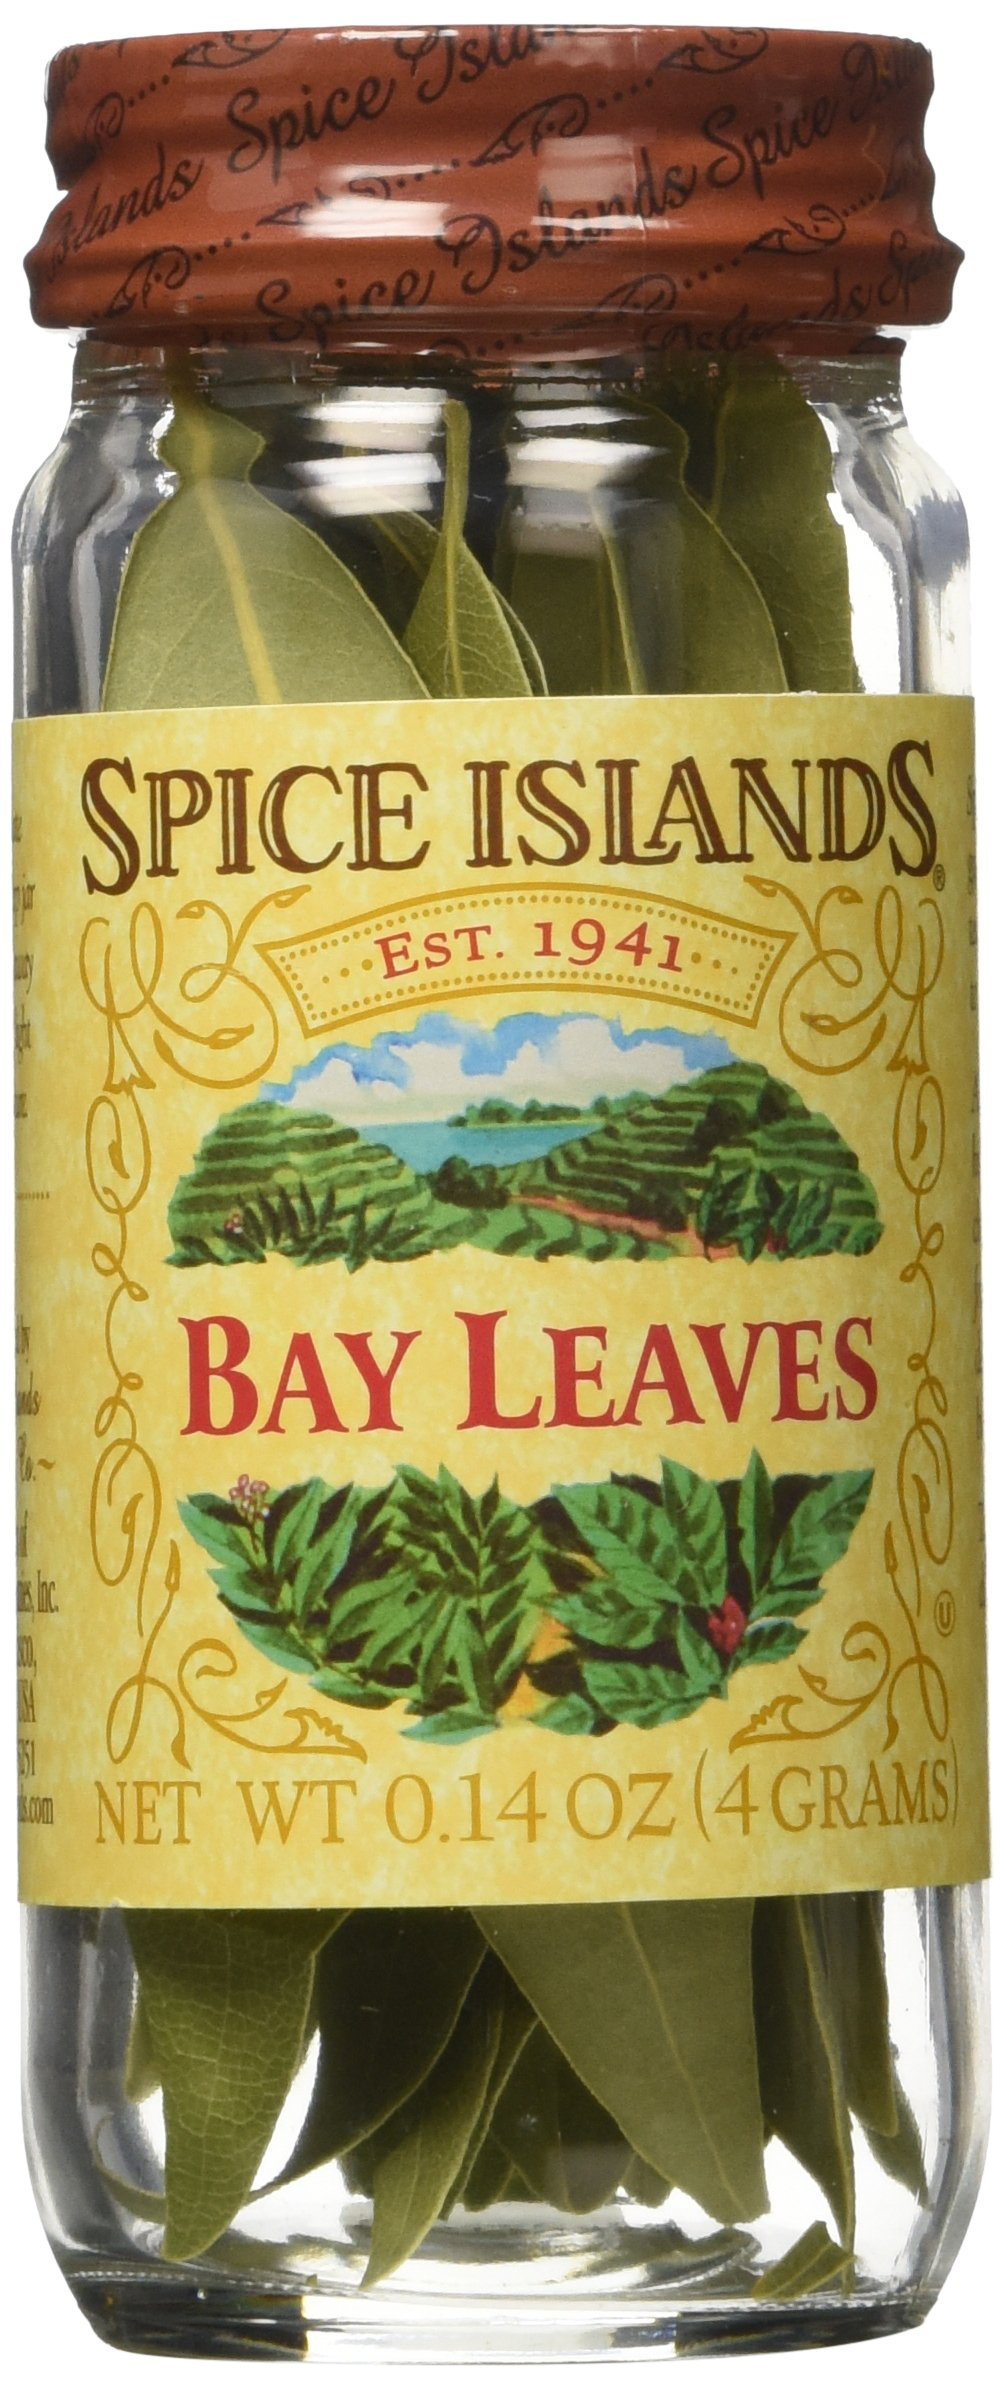 Spice Islands Bay Leaves Whole, 0.14-oz